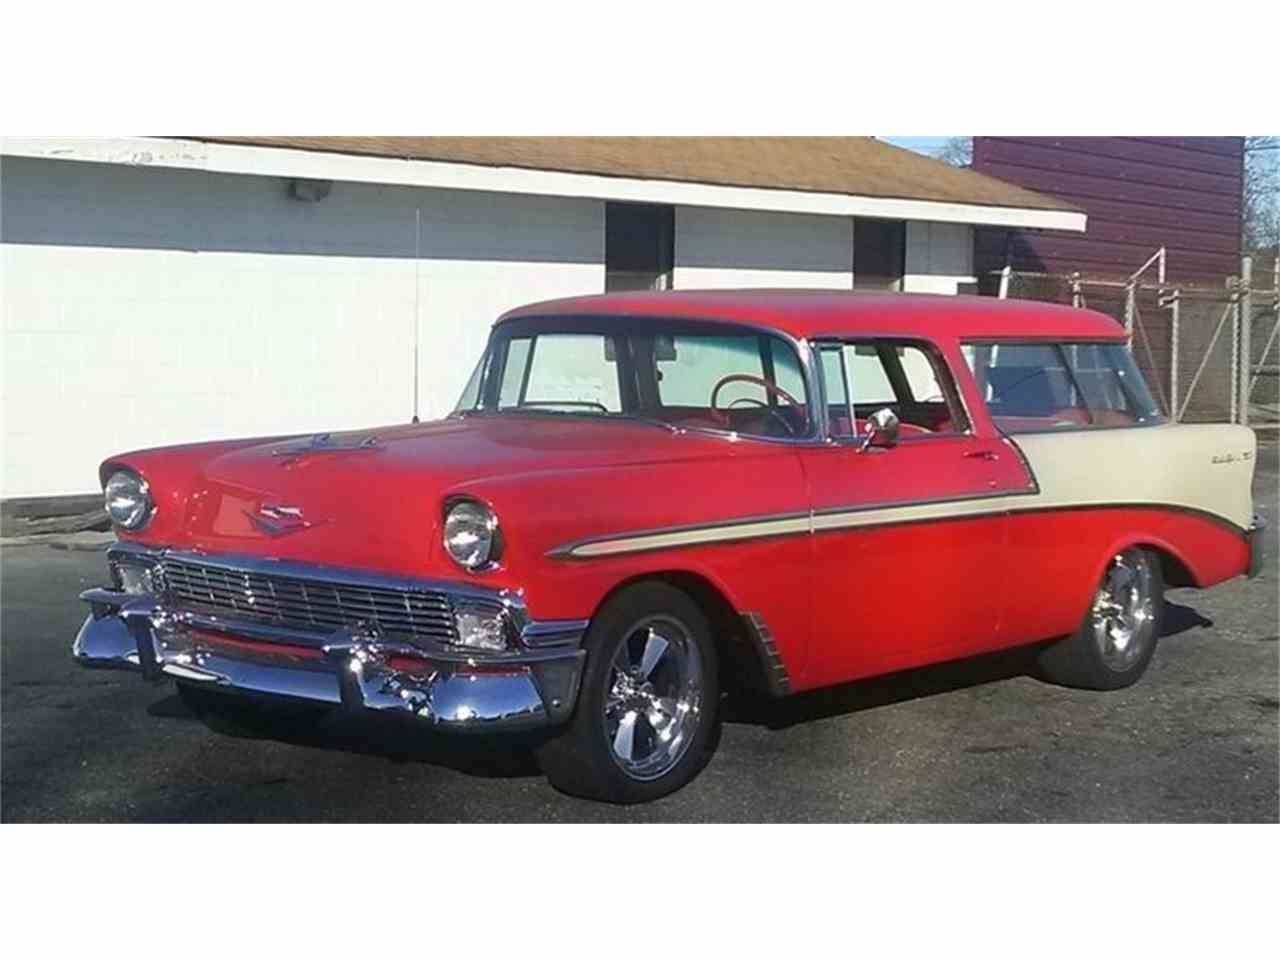 All Chevy 1956 chevy nomad for sale : 1956 Chevrolet Nomad for Sale | ClassicCars.com | CC-1024762